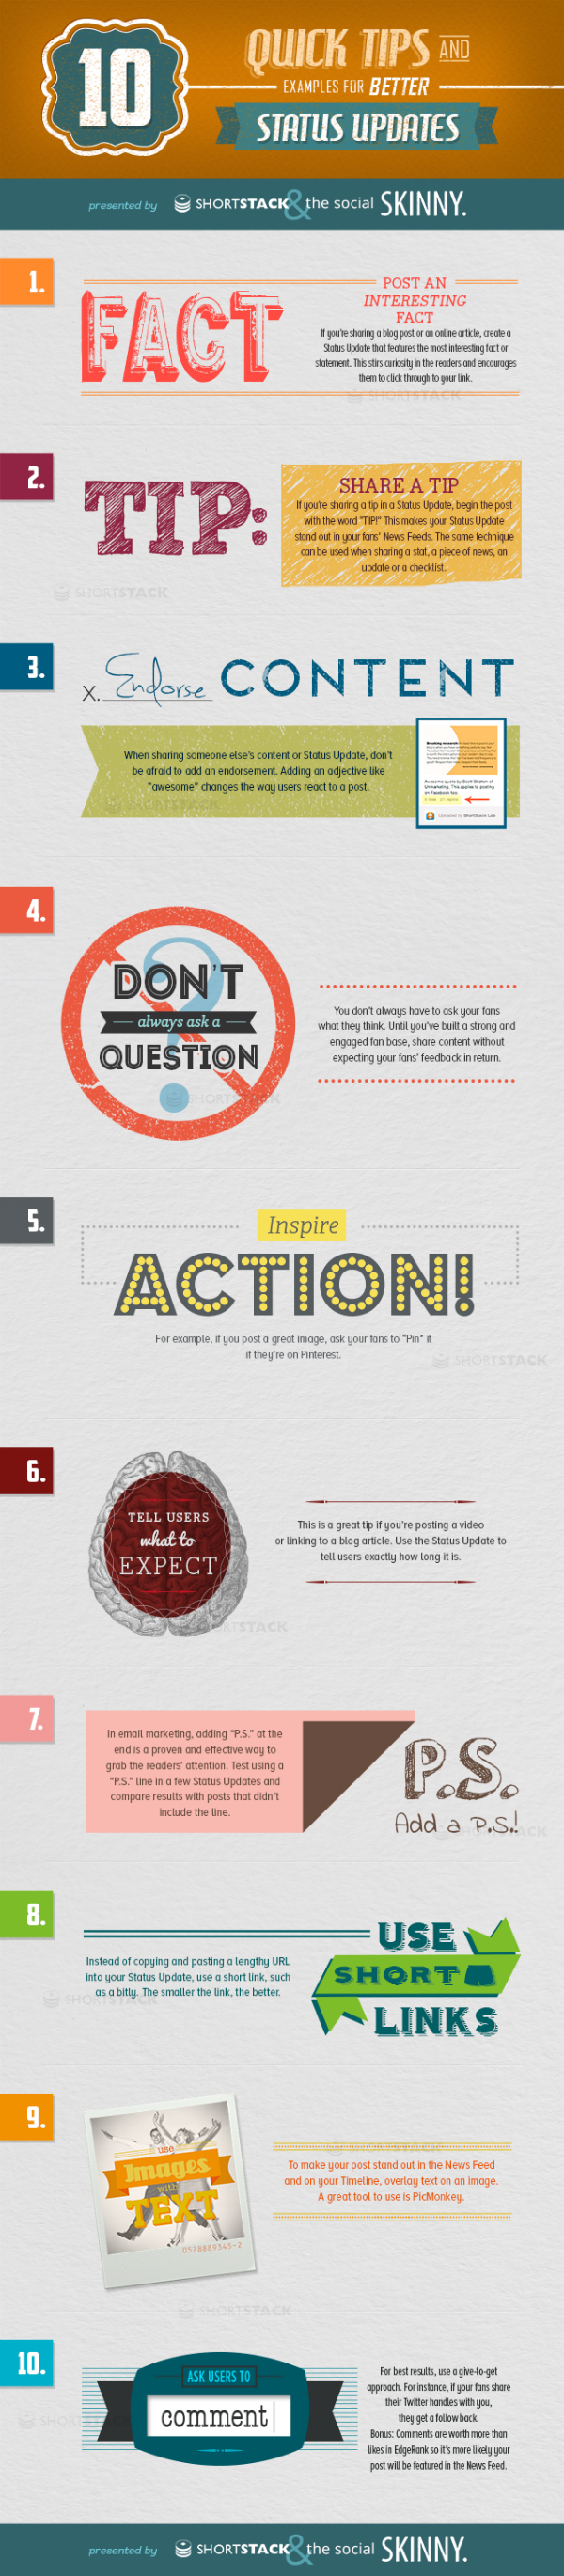 10 Quick Tips for Better Status Updates #Infographic by @Cara Pring http://thesocialskinny.com/10-quick-tips-for-better-status-updates-infographic/